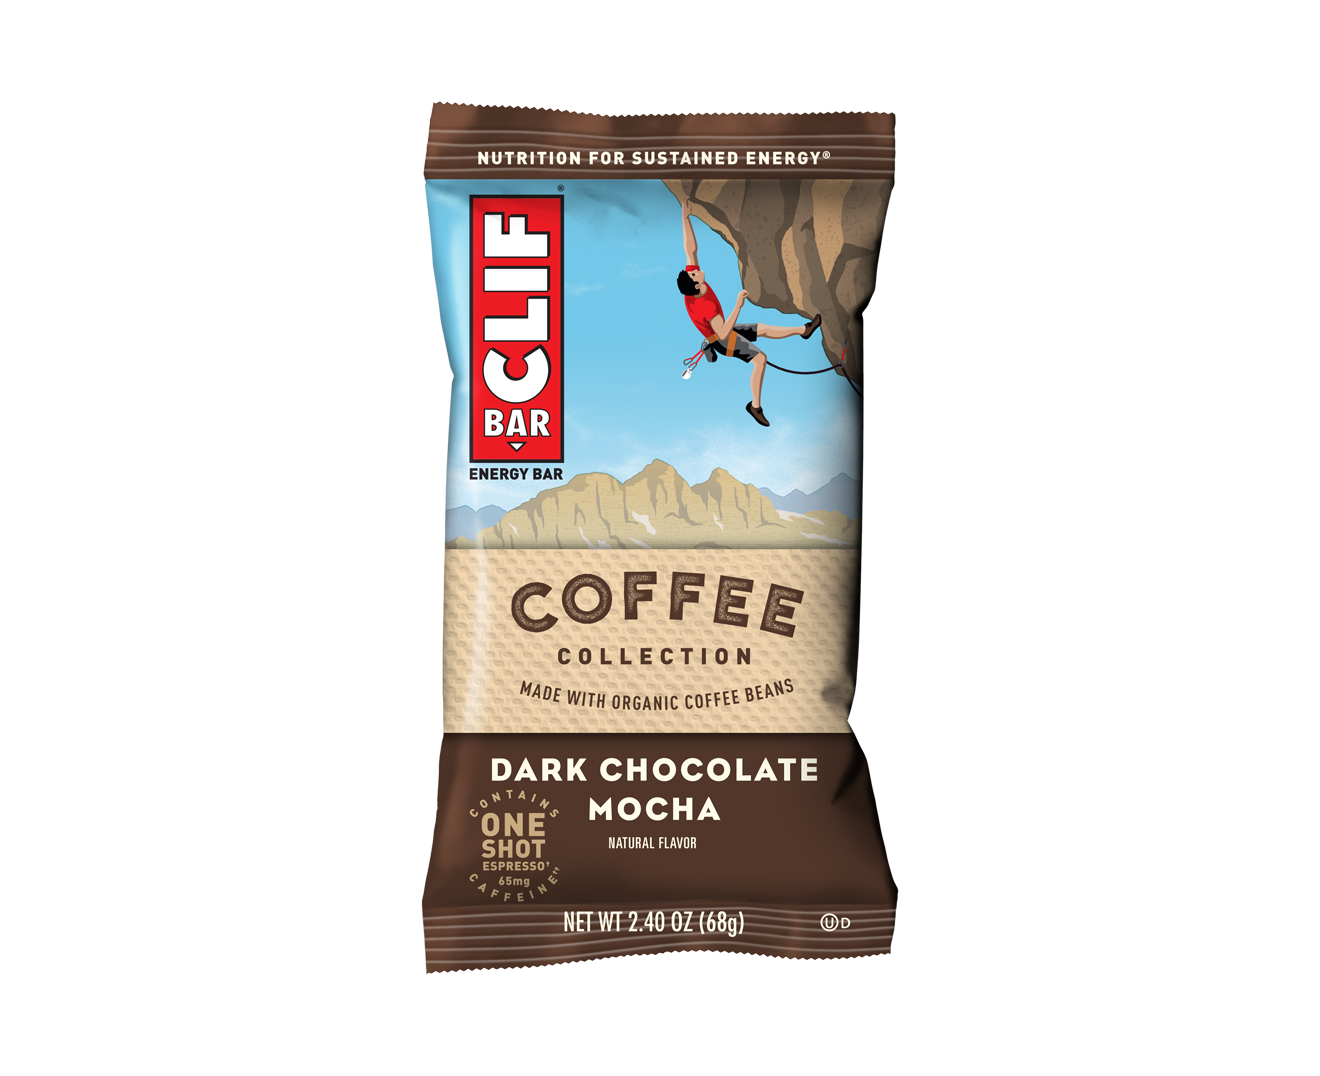 Coffee Collection: Dark Chocolate Mocha Flavor packaging